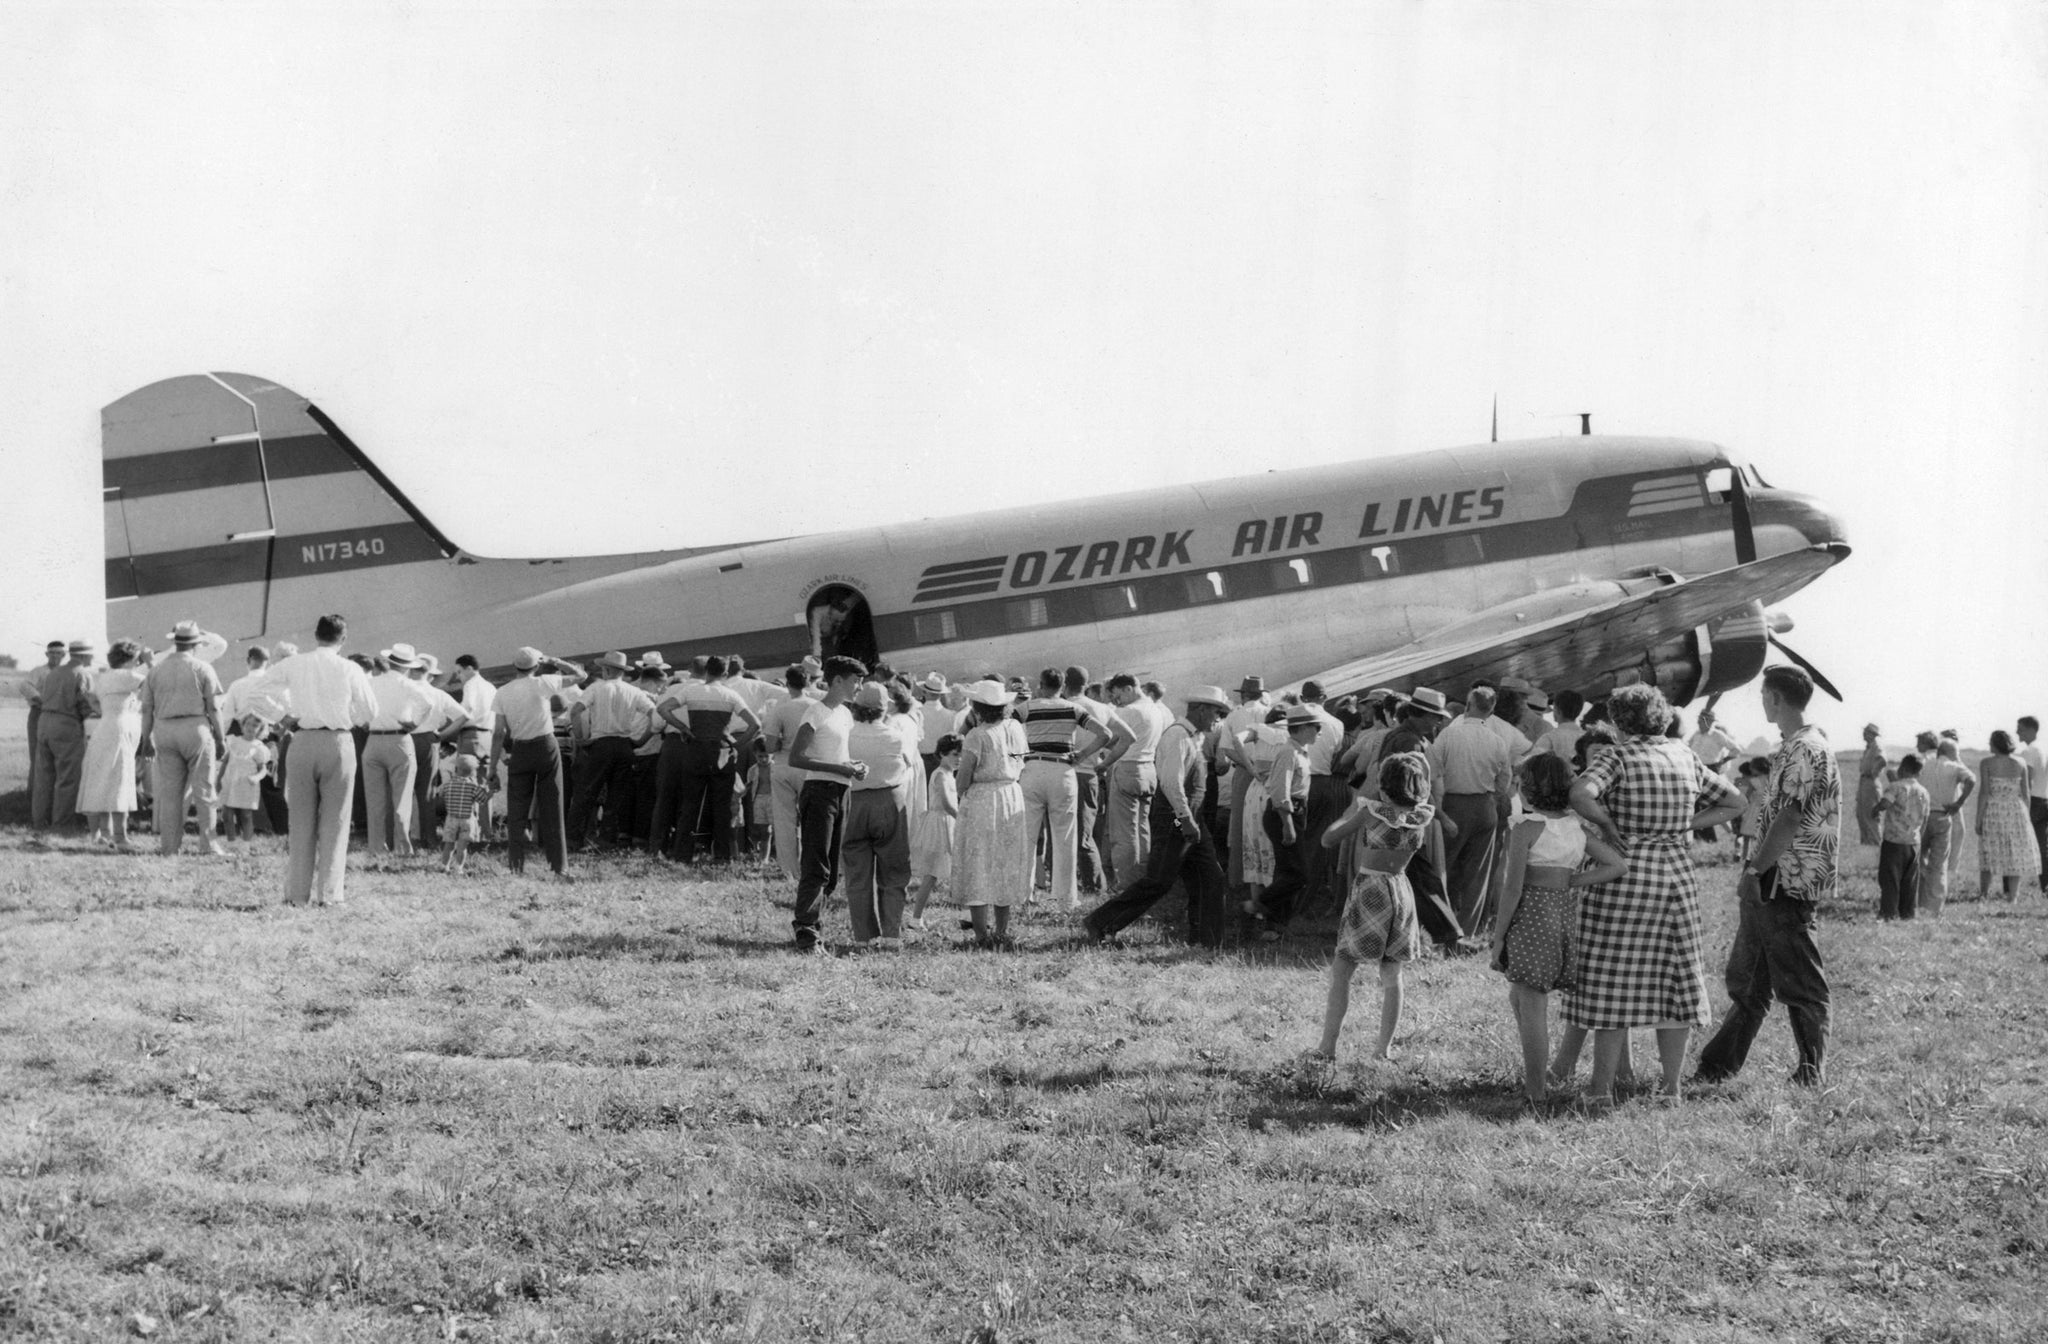 An Ozark DC-3 being inspected by curious citizens on Air Carrier Get Acquainted Day at Municipal Airport, 1951. It was a day where the plane was open to public viewing, and a few lucky citizens took a ride around Bloomington. -- Courtesy of the McLean County Museum of History, Pantagraph Collection